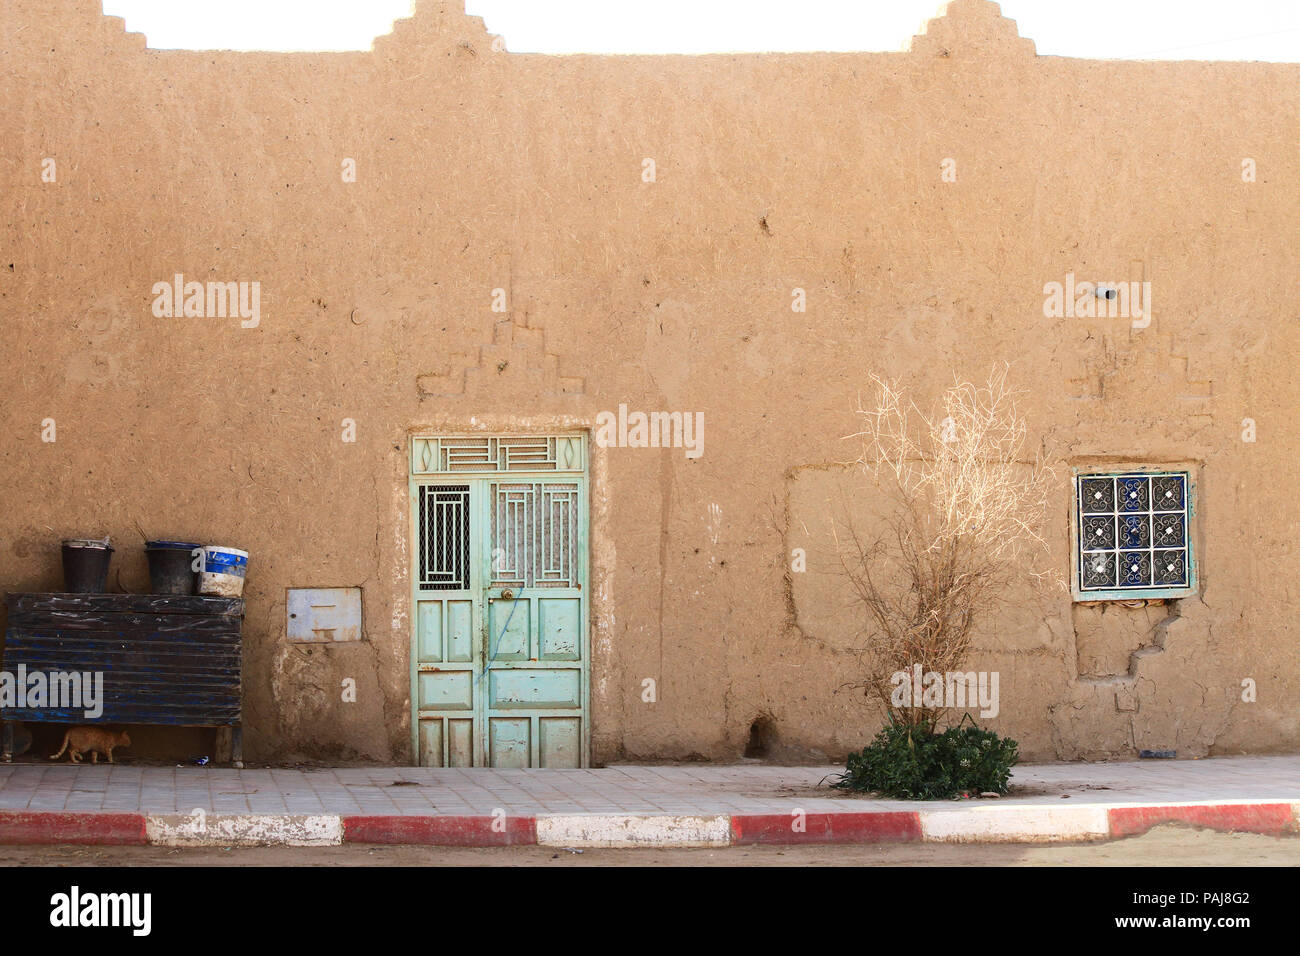 Village traditional house with pastel green steel doors on sunny day. Sahara Desert. Morocco, Africa. - Stock Image